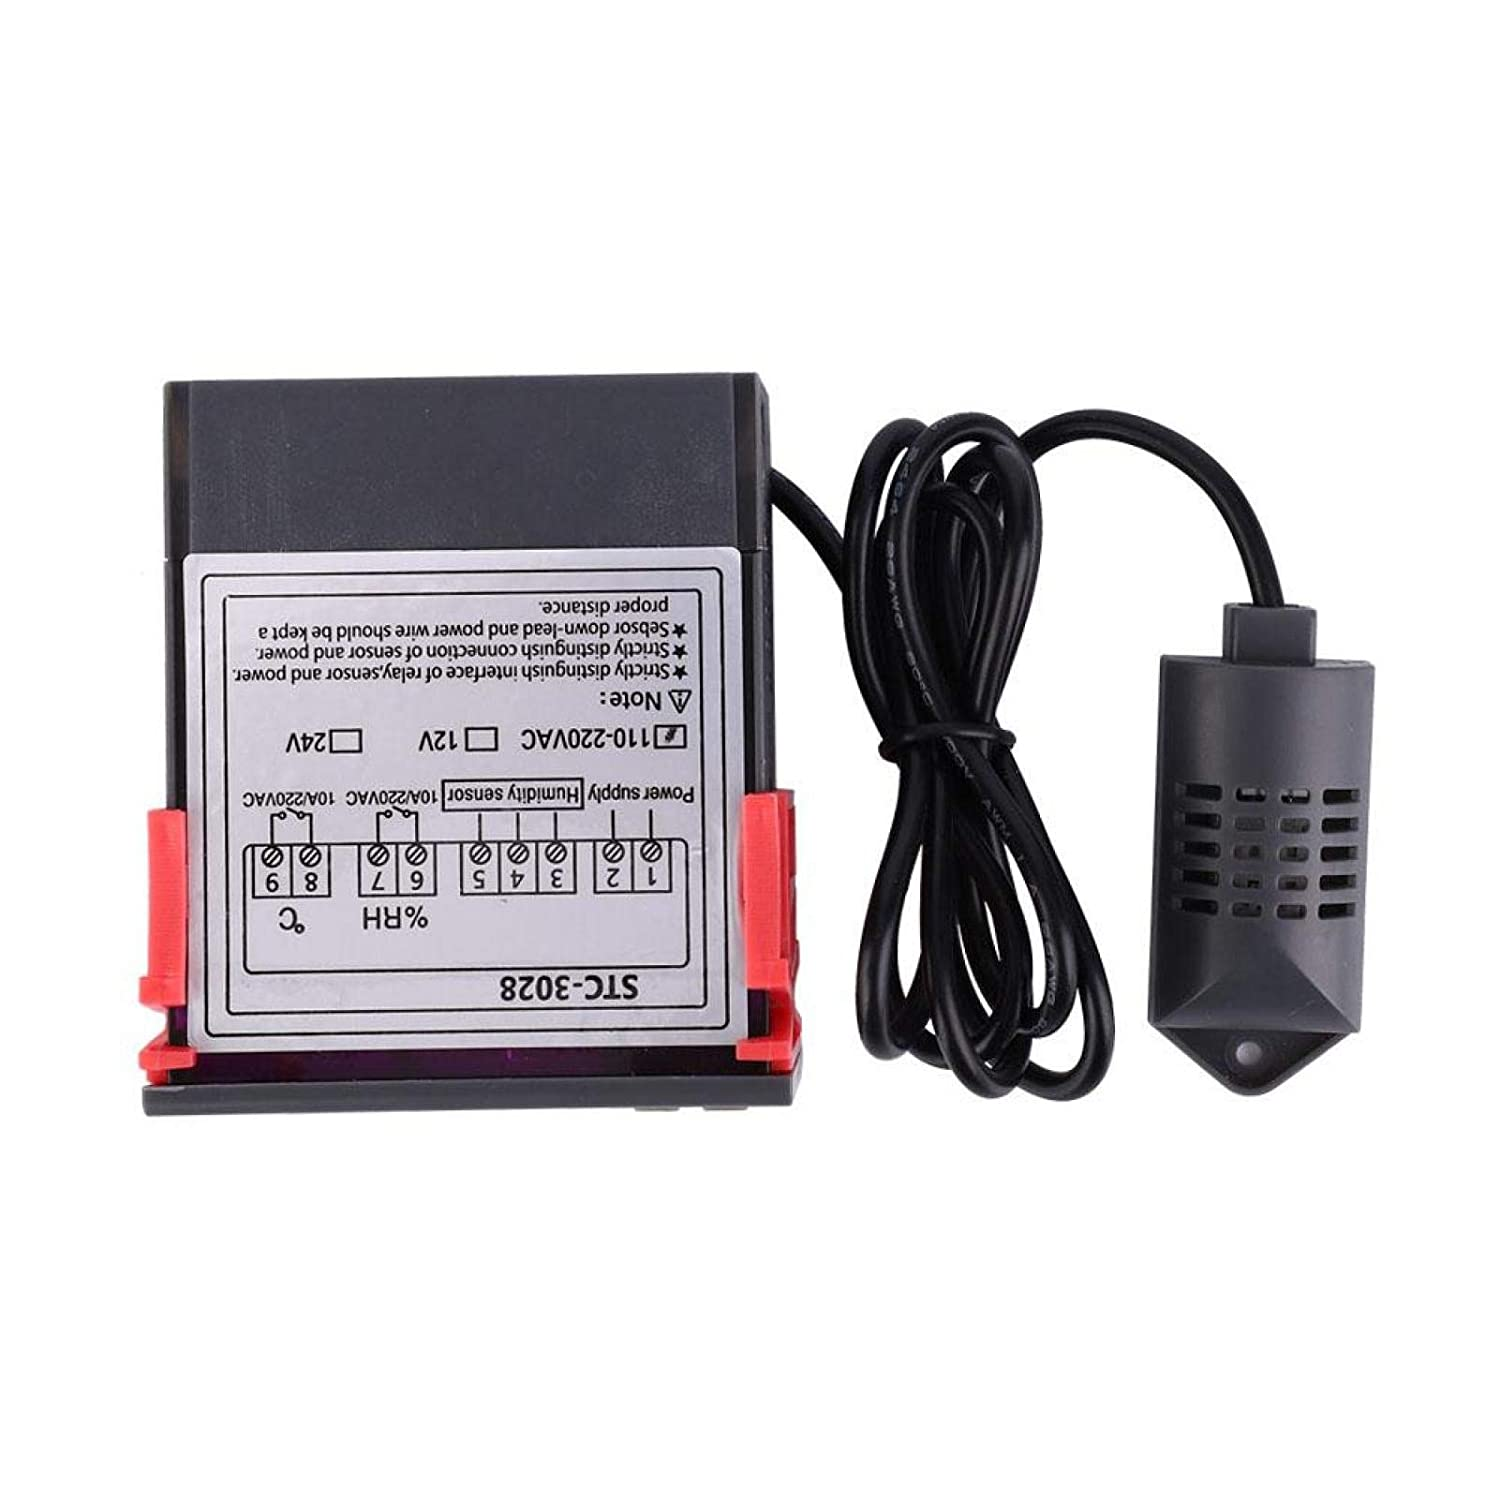 In stock STC-3028 Max 66% OFF Digital Display Temperature Humidity Controller Intelli